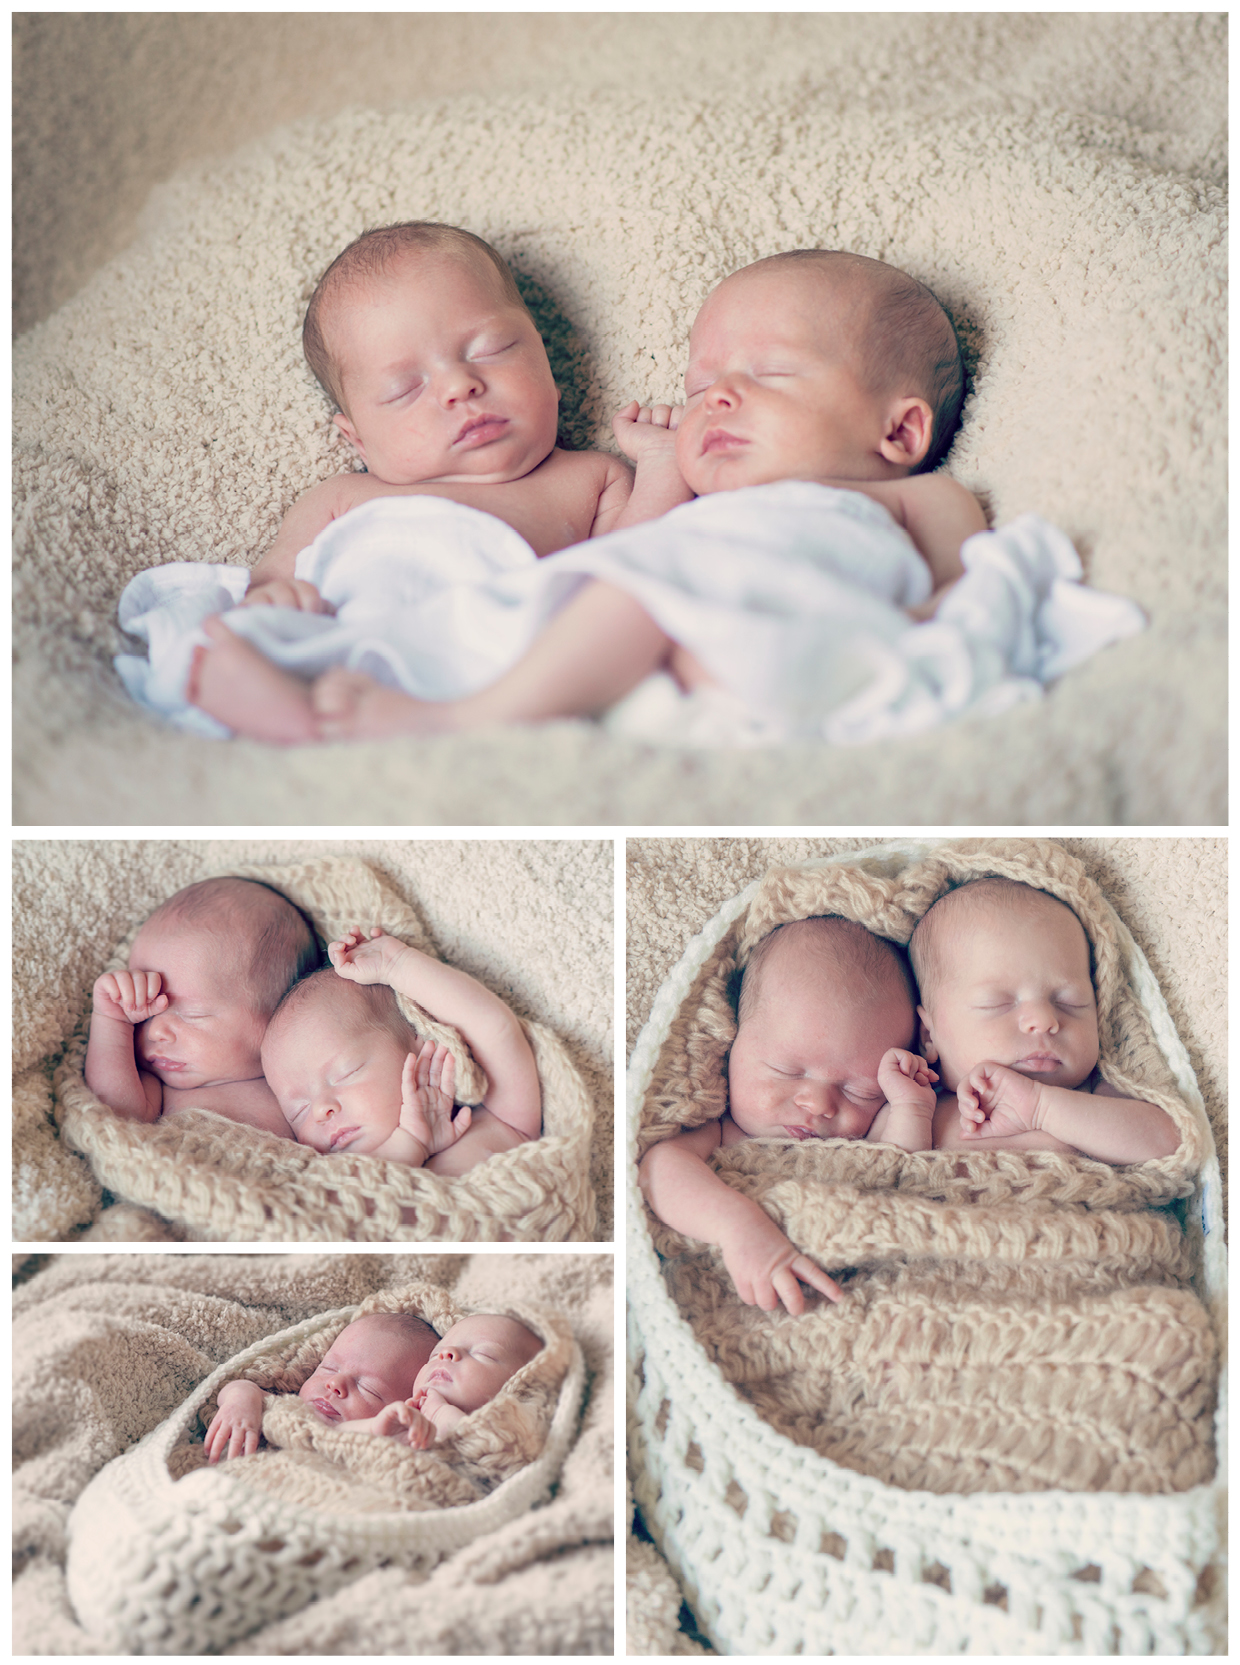 the twins @ Erica Hawkins Photography